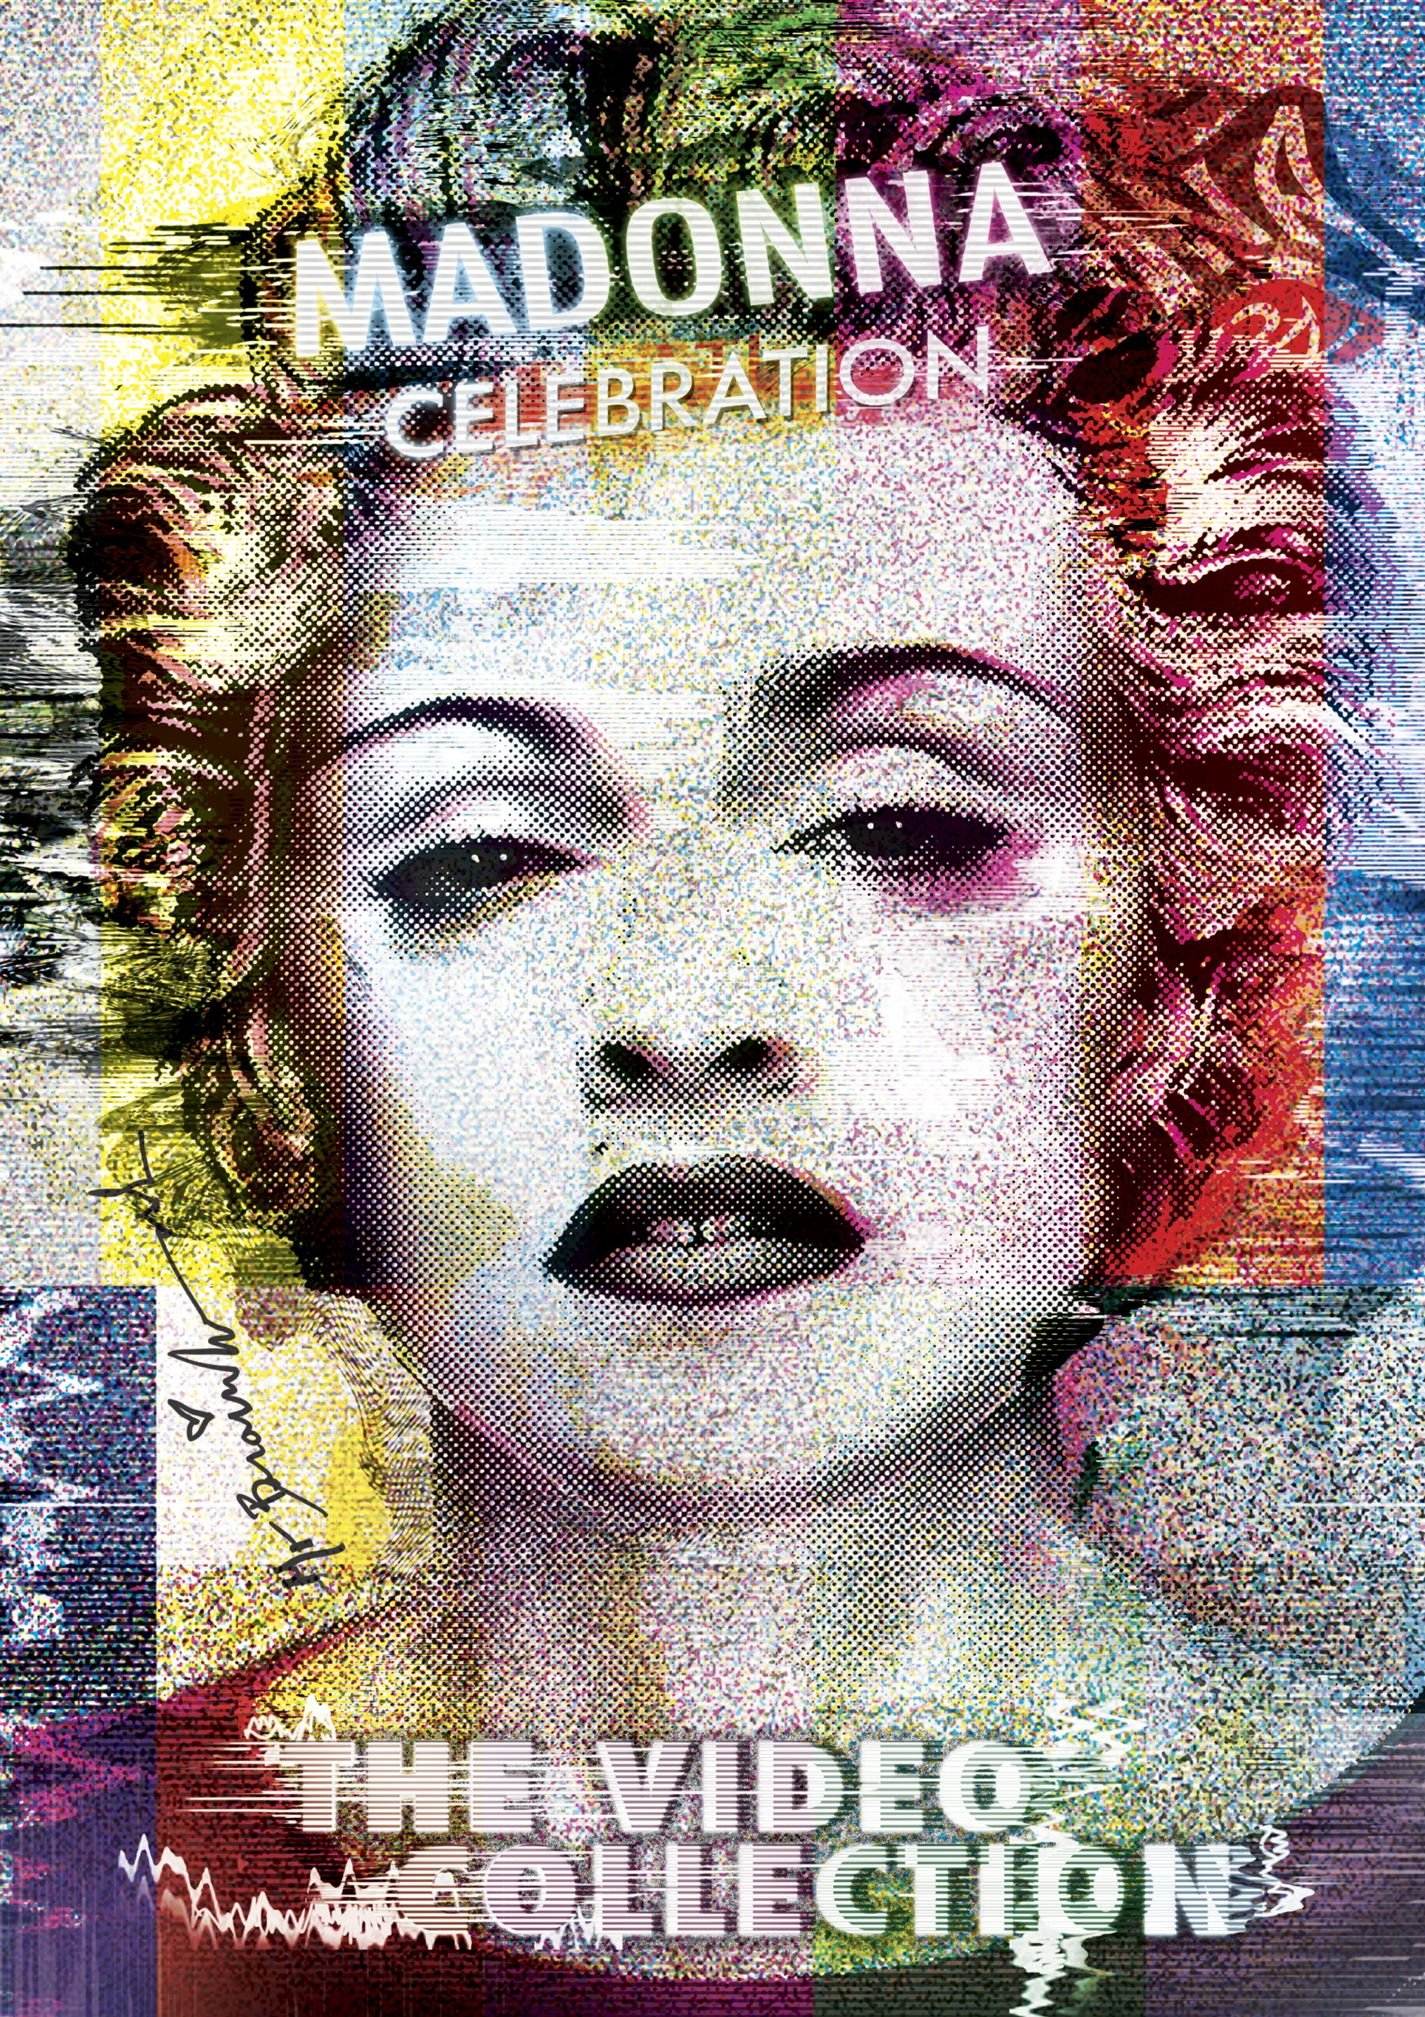 Madonna Celebration: The Video Collection by Warner Bros